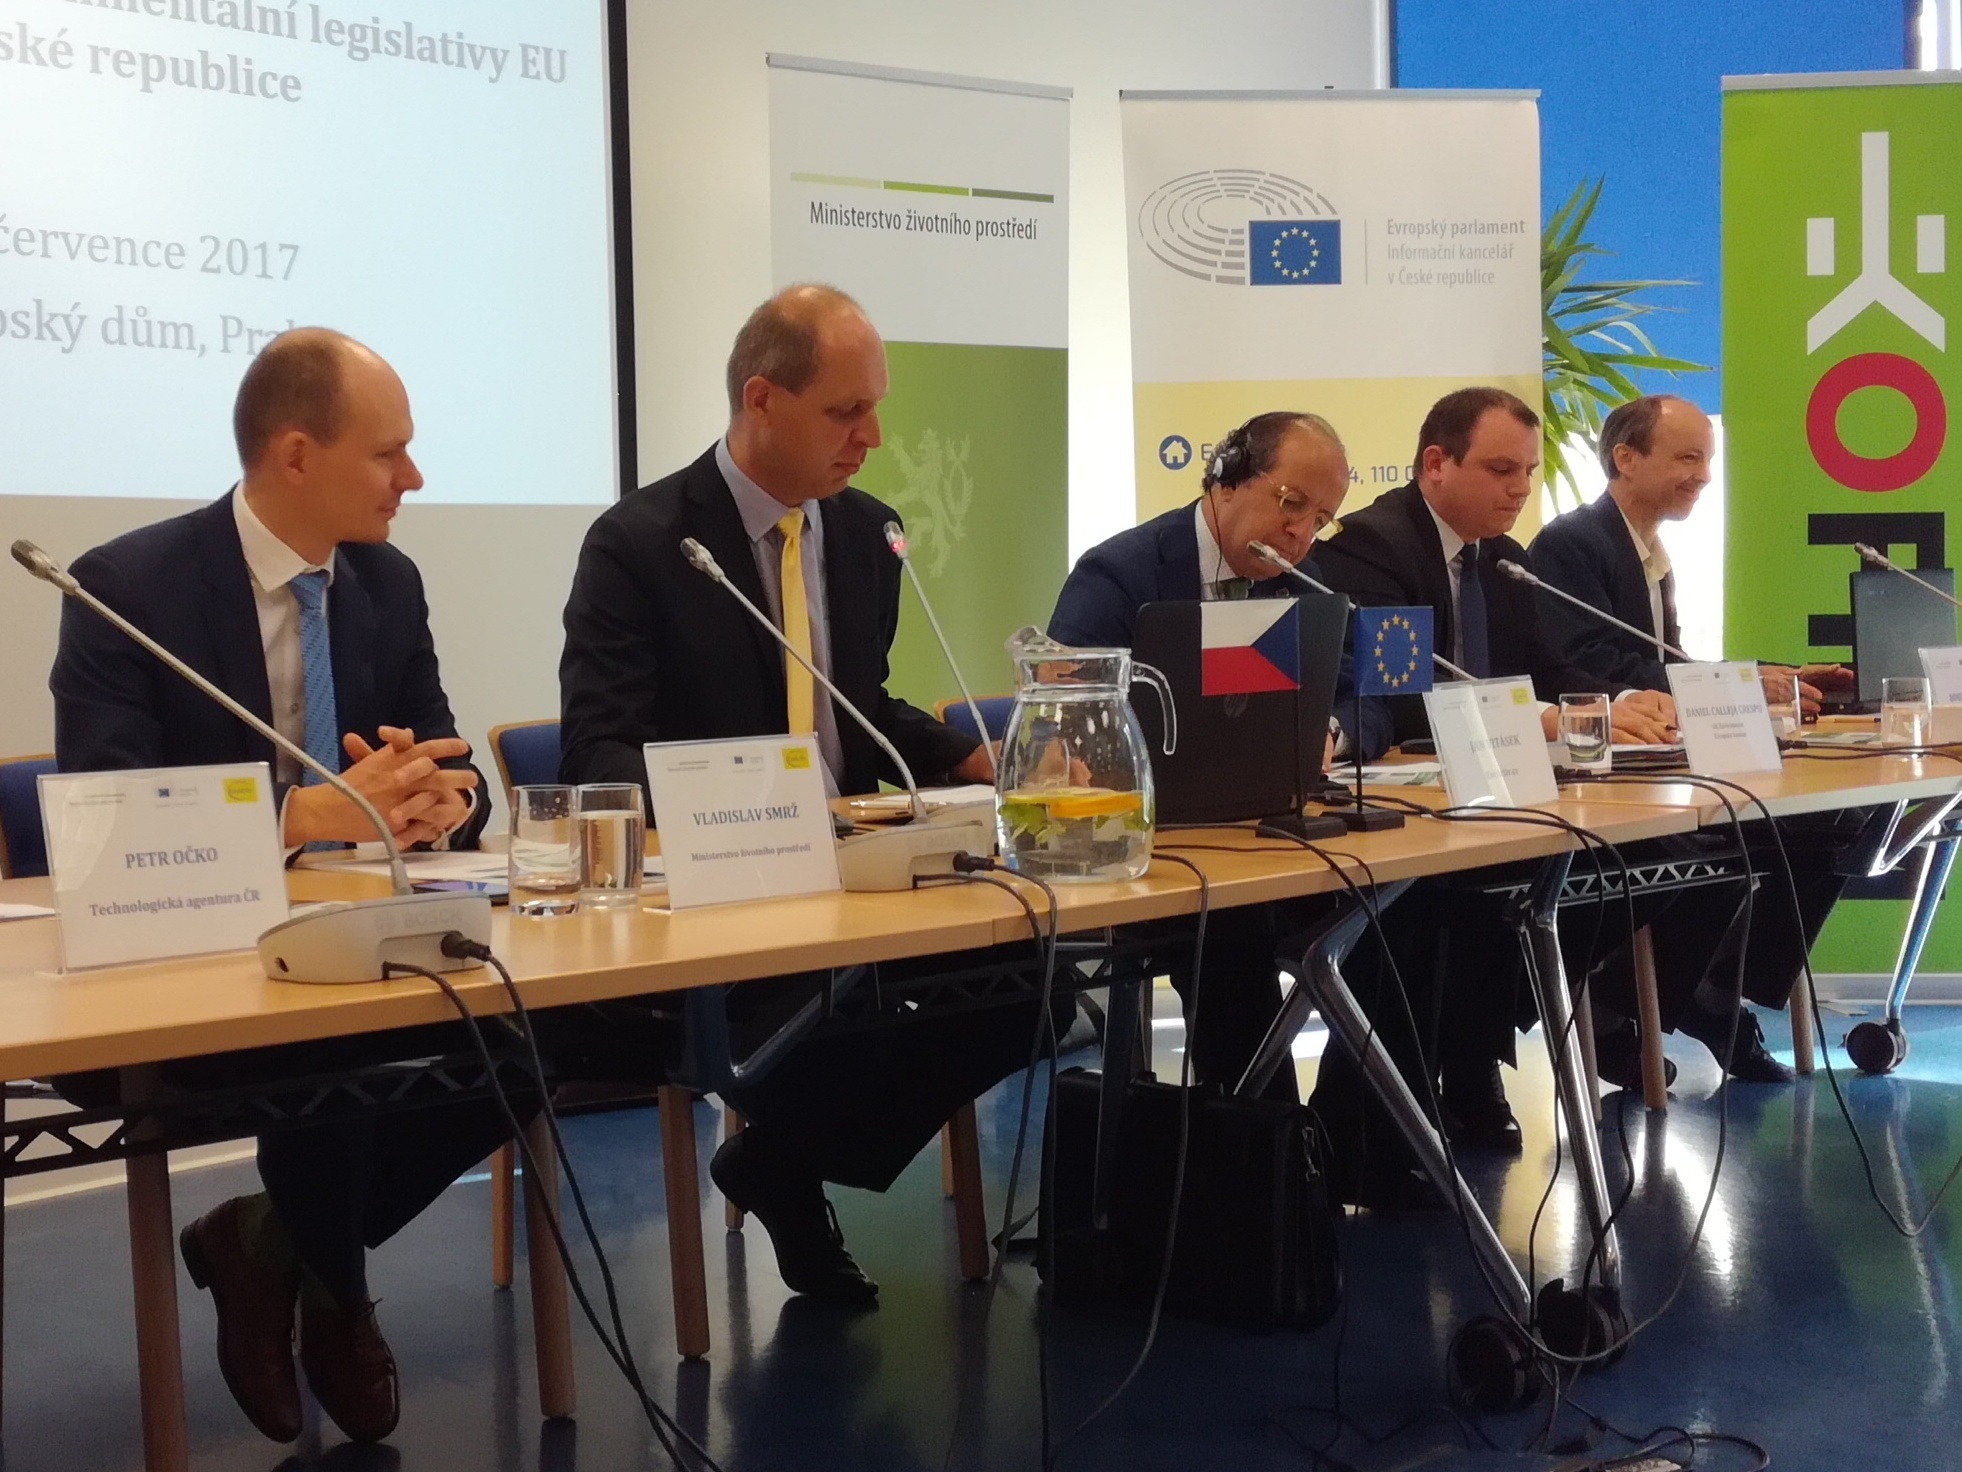 Daniel Calleja of the European Commission in Prague: presented the Czech Republic country report on implementation of EU environmental legislation